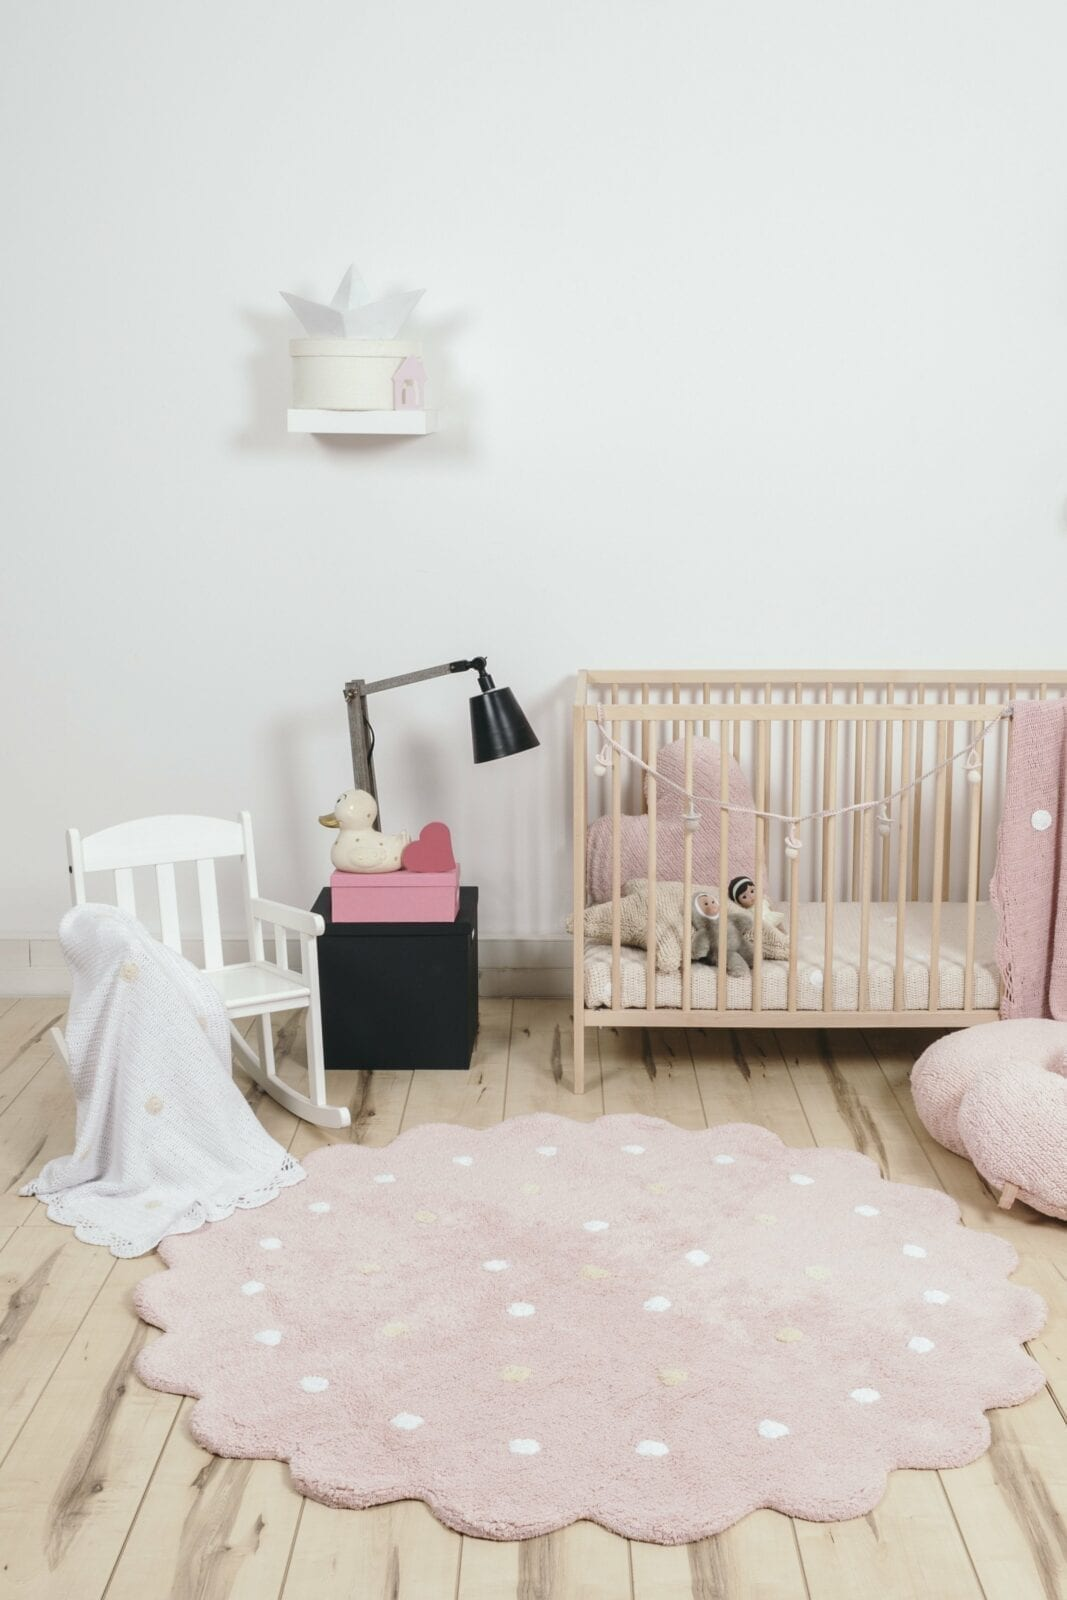 Image of: Lorena Canals Baby Nursery Rug Little Biscuit Pink Free Shipping